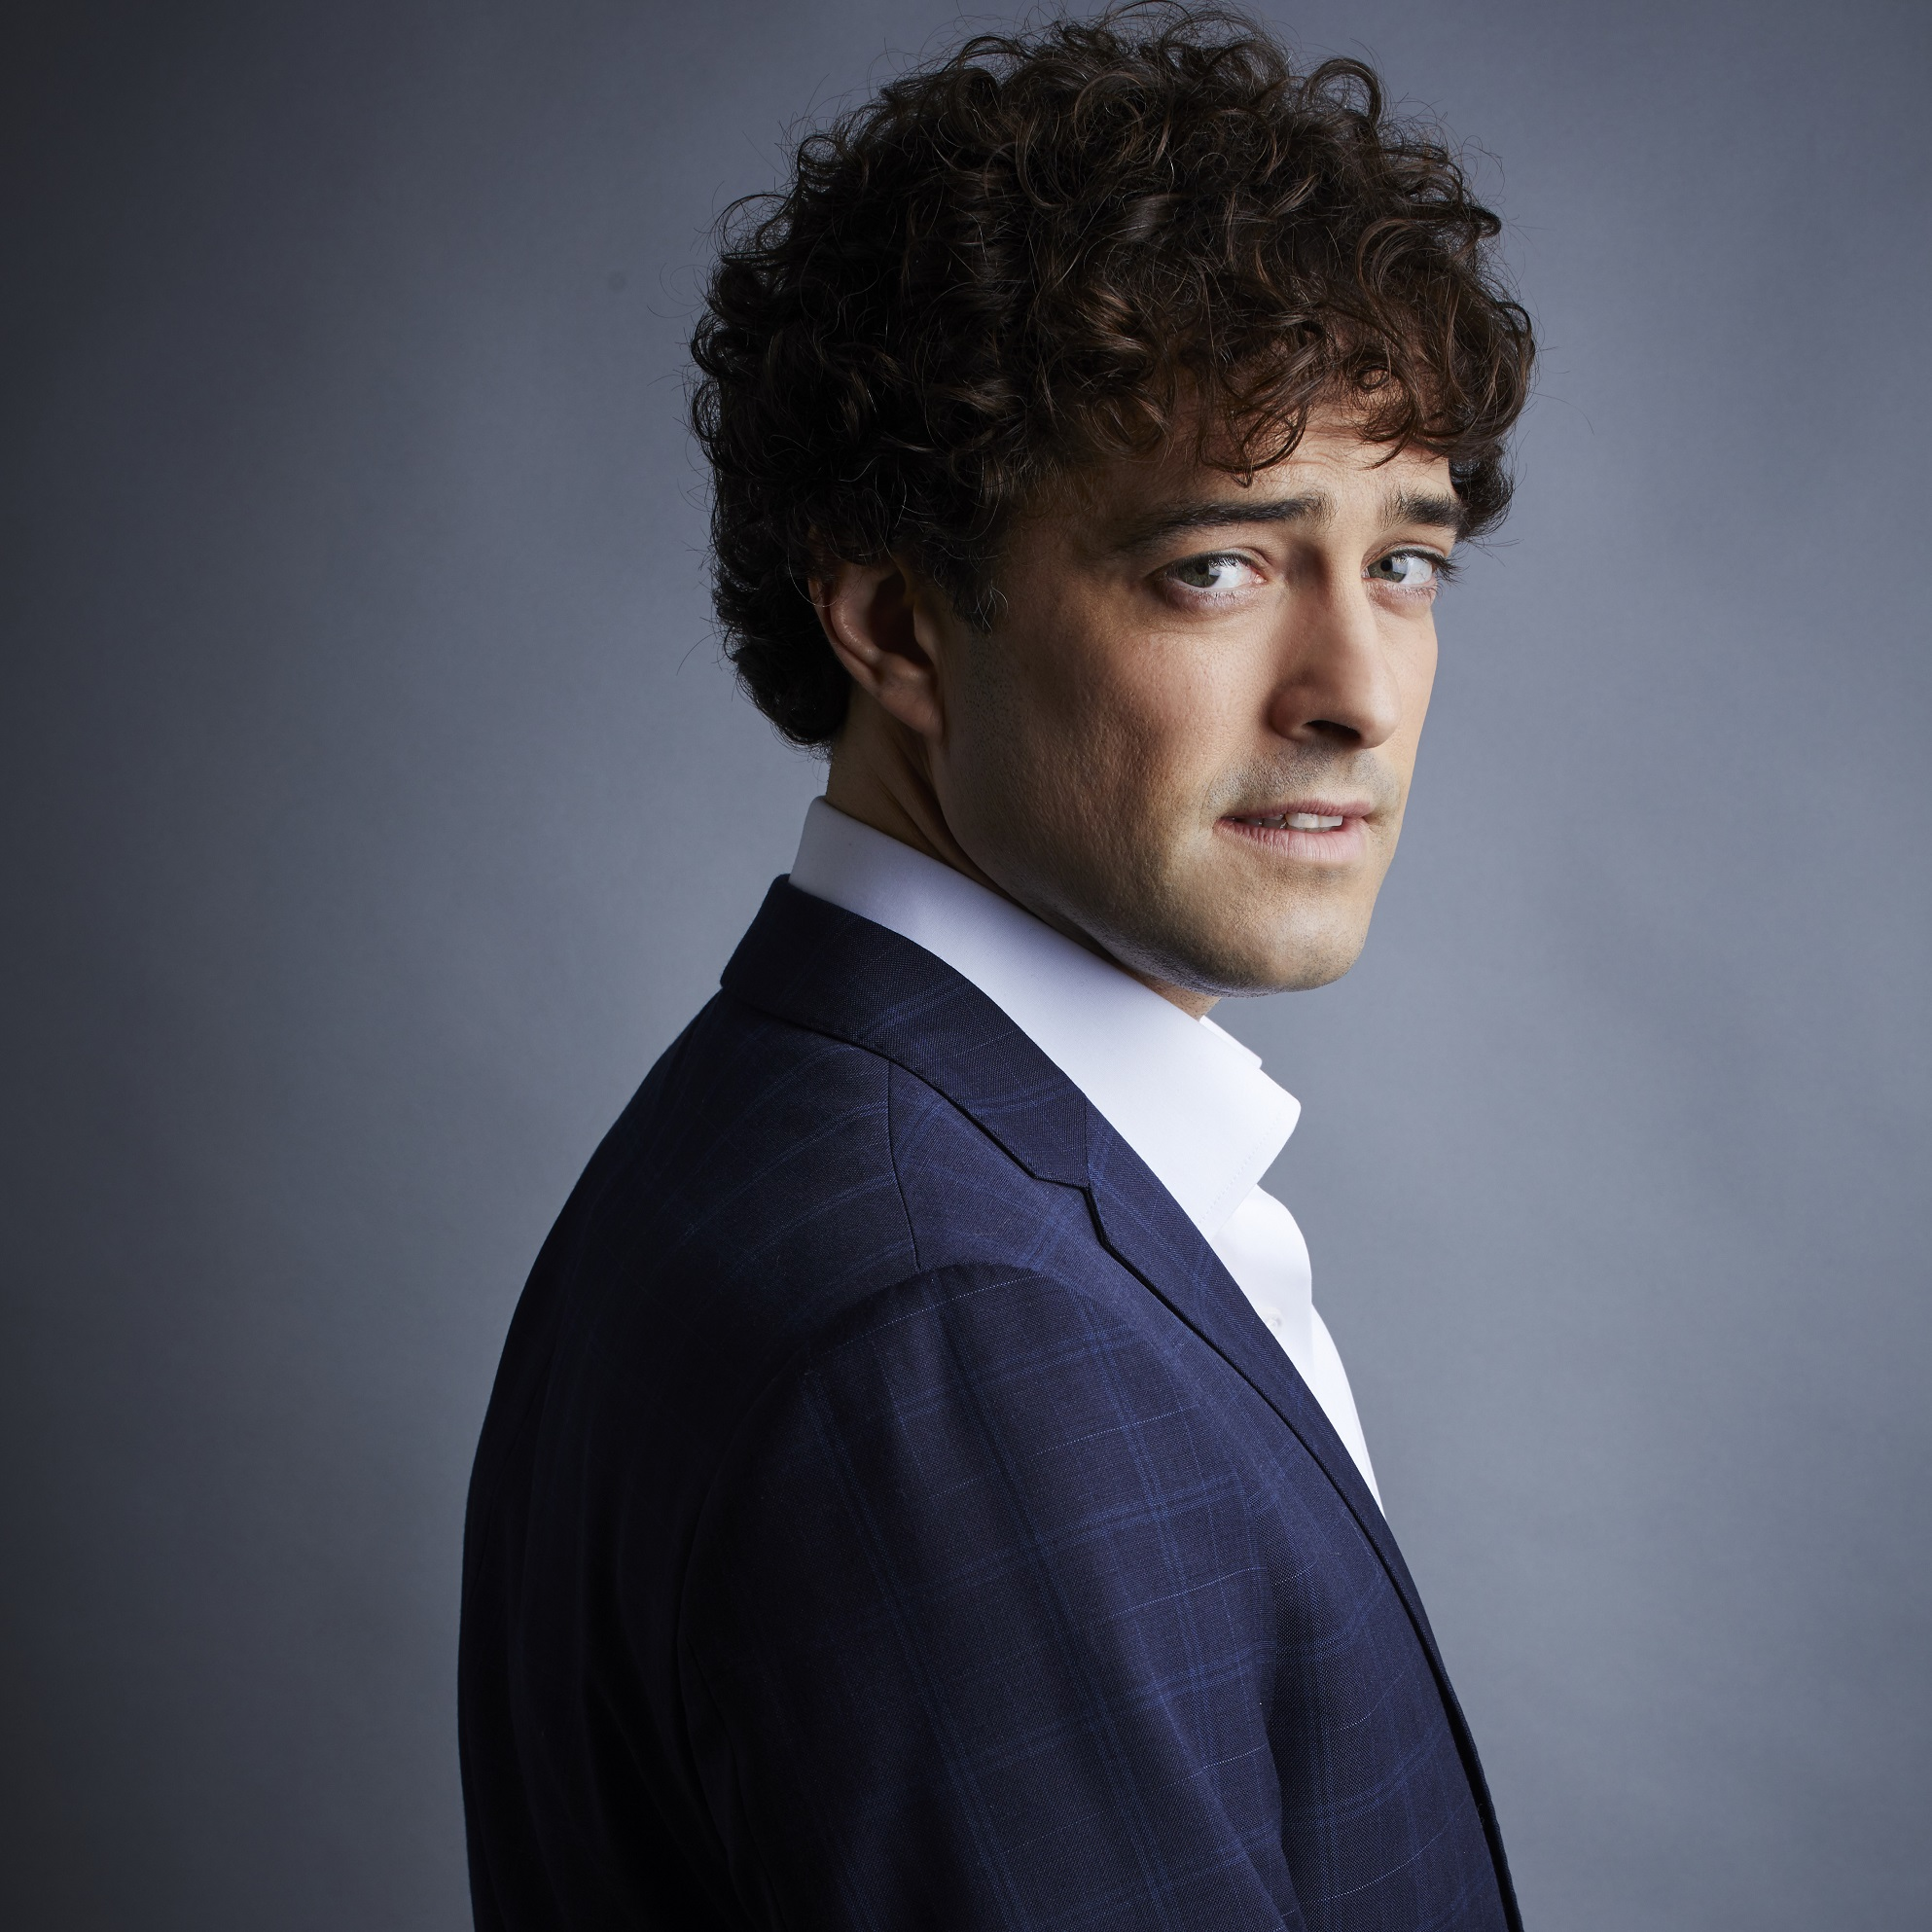 Saturday 19 May at 7.30pmTickets - £24It's been ten years since Lee Mead first donned the coat in the West End production of Joseph and the Amazing Technicolor Dreamcoat.Join Lee and his amazing band as he takes you through the last ten years of his life. Featuring songs from the classic shows he has starred in, such as THE PHANTOM OF THE OPERA, MISS SAIGON, CHITTY CHITTY BANG BANG, LEGALLY BLONDE, WICKED and many more. Including songs from his previous albums,and his brand new album LEE MEAD TEN YEARS. A fantastic evening of songs and stories and you never know Lee might don the coat once more!There is a chance to meet Lee before the show (from 5.30pm), tickets for this opportunity are £51. You can book these seats anywhere but if you want seats in Row A or B just give us a call on 01633 656679 or 656681 and we can book those for you.